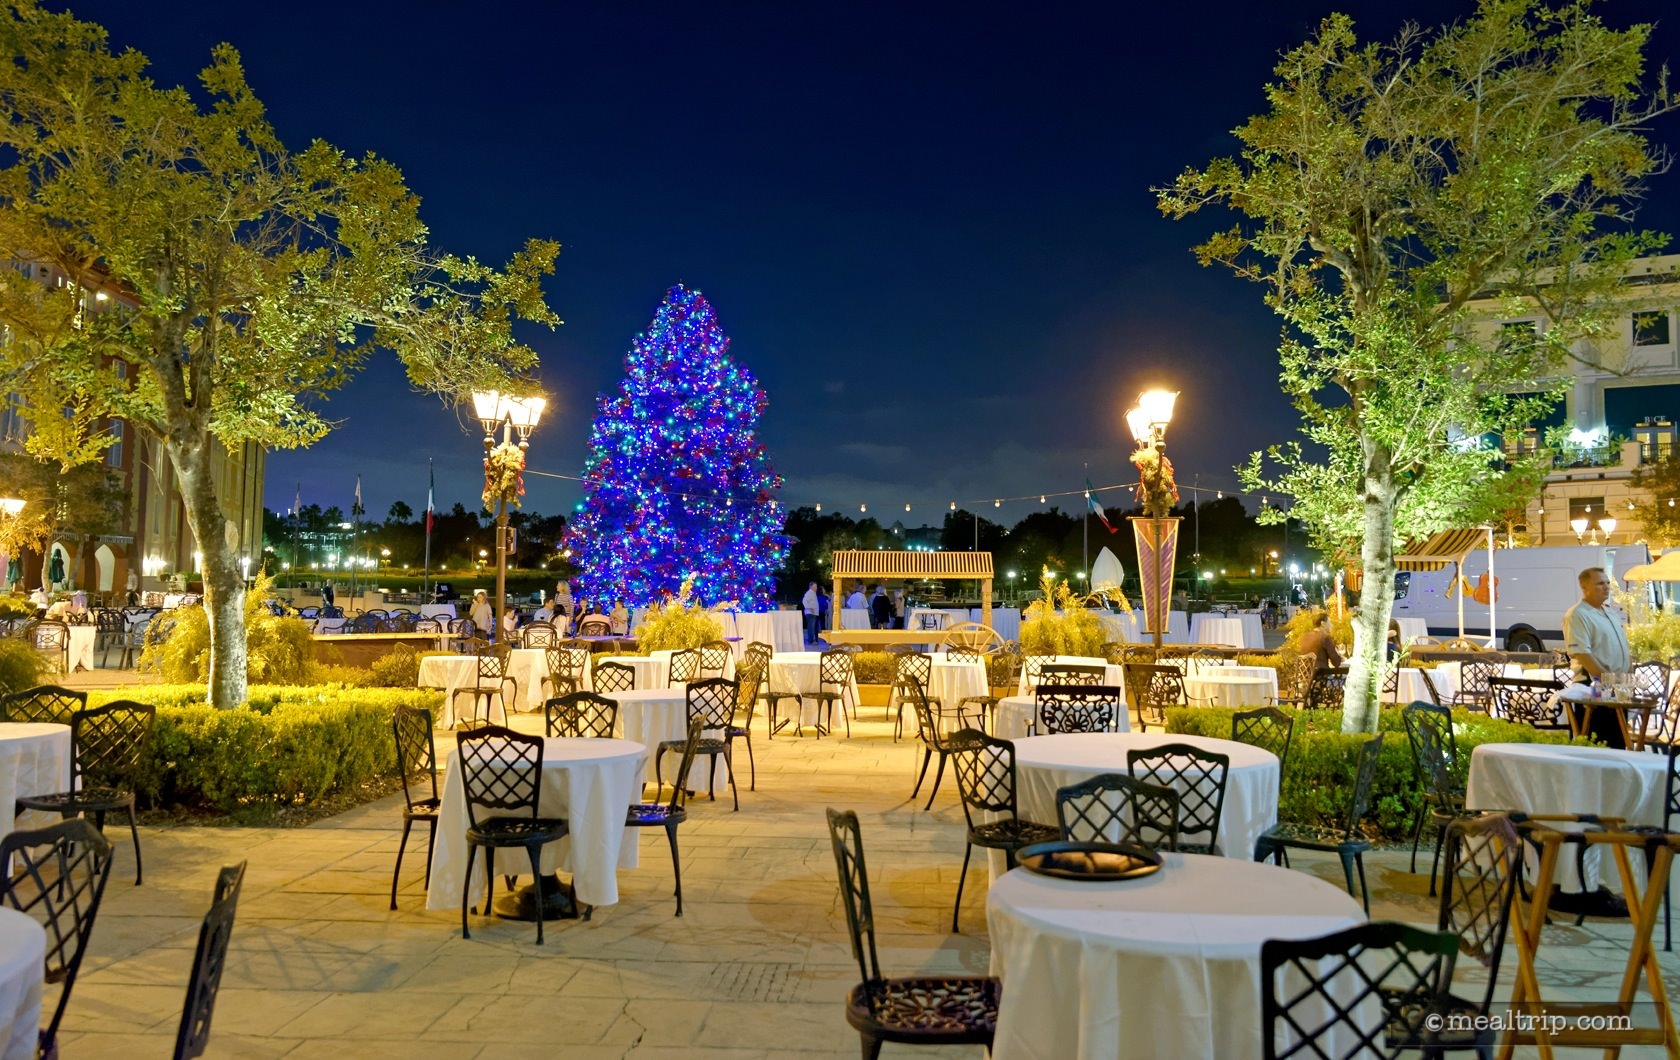 The Centerpiece Tree at Holiday Harbor Nights